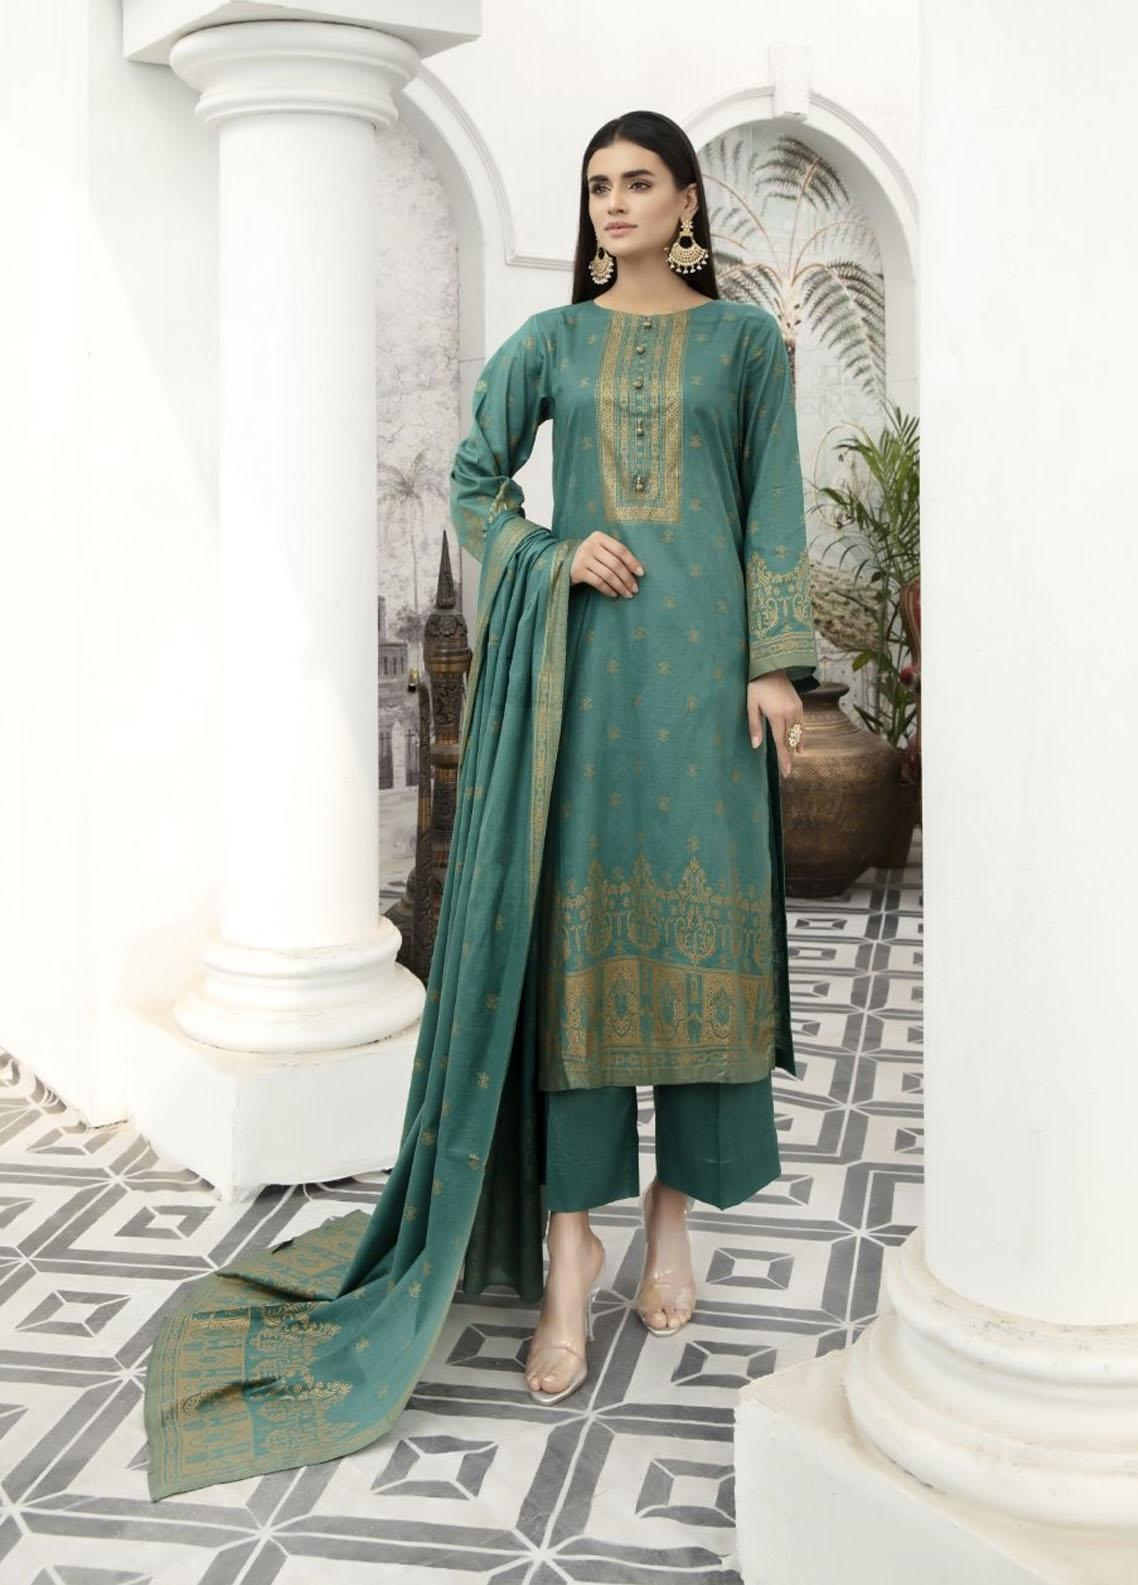 Jhalak By Ittehad Textiles Printed Lawn Suits Unstitched 3 Piece ITD21JL 21230C - Summer Collection